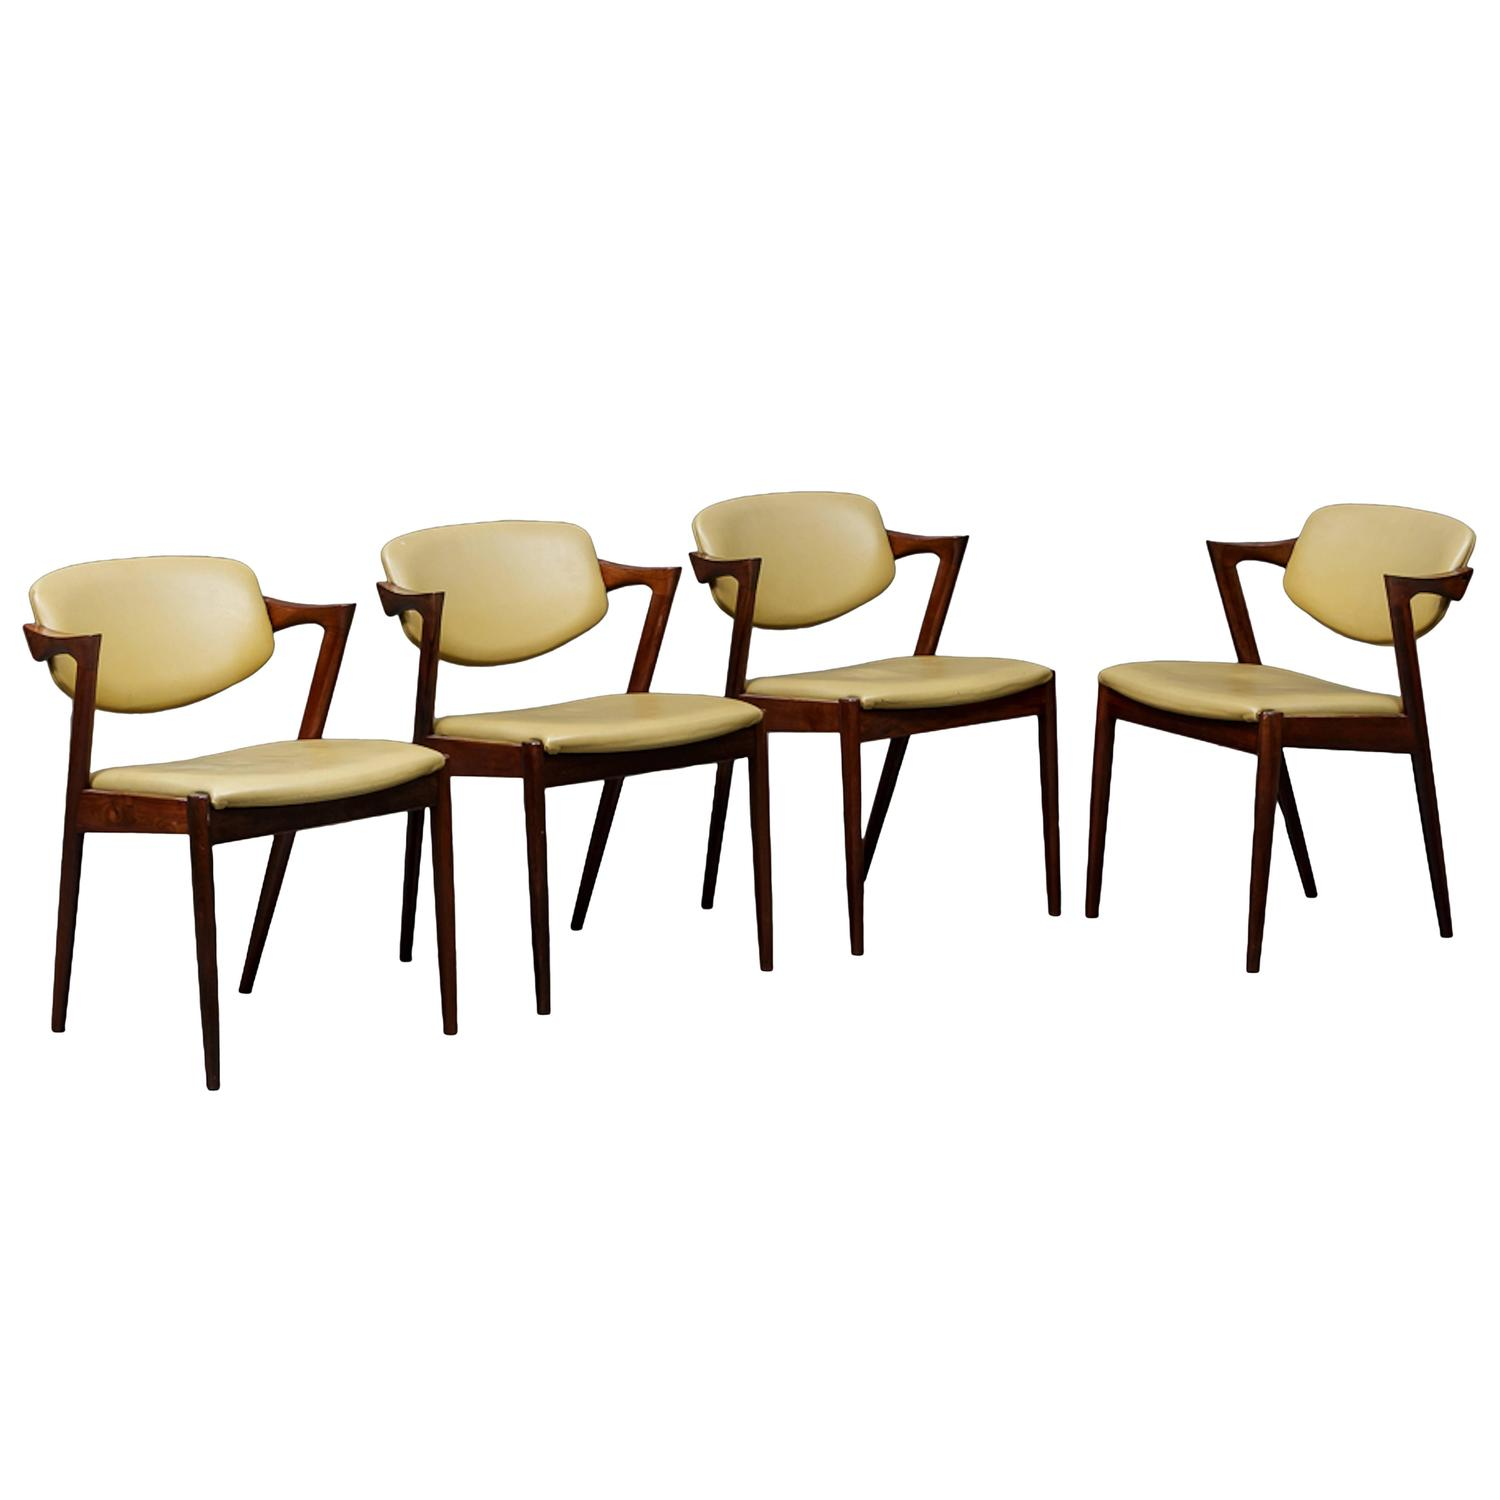 Four kai kristiansen rosewood dining chairs at 1stdibs - Kai kristiansen chairs ...